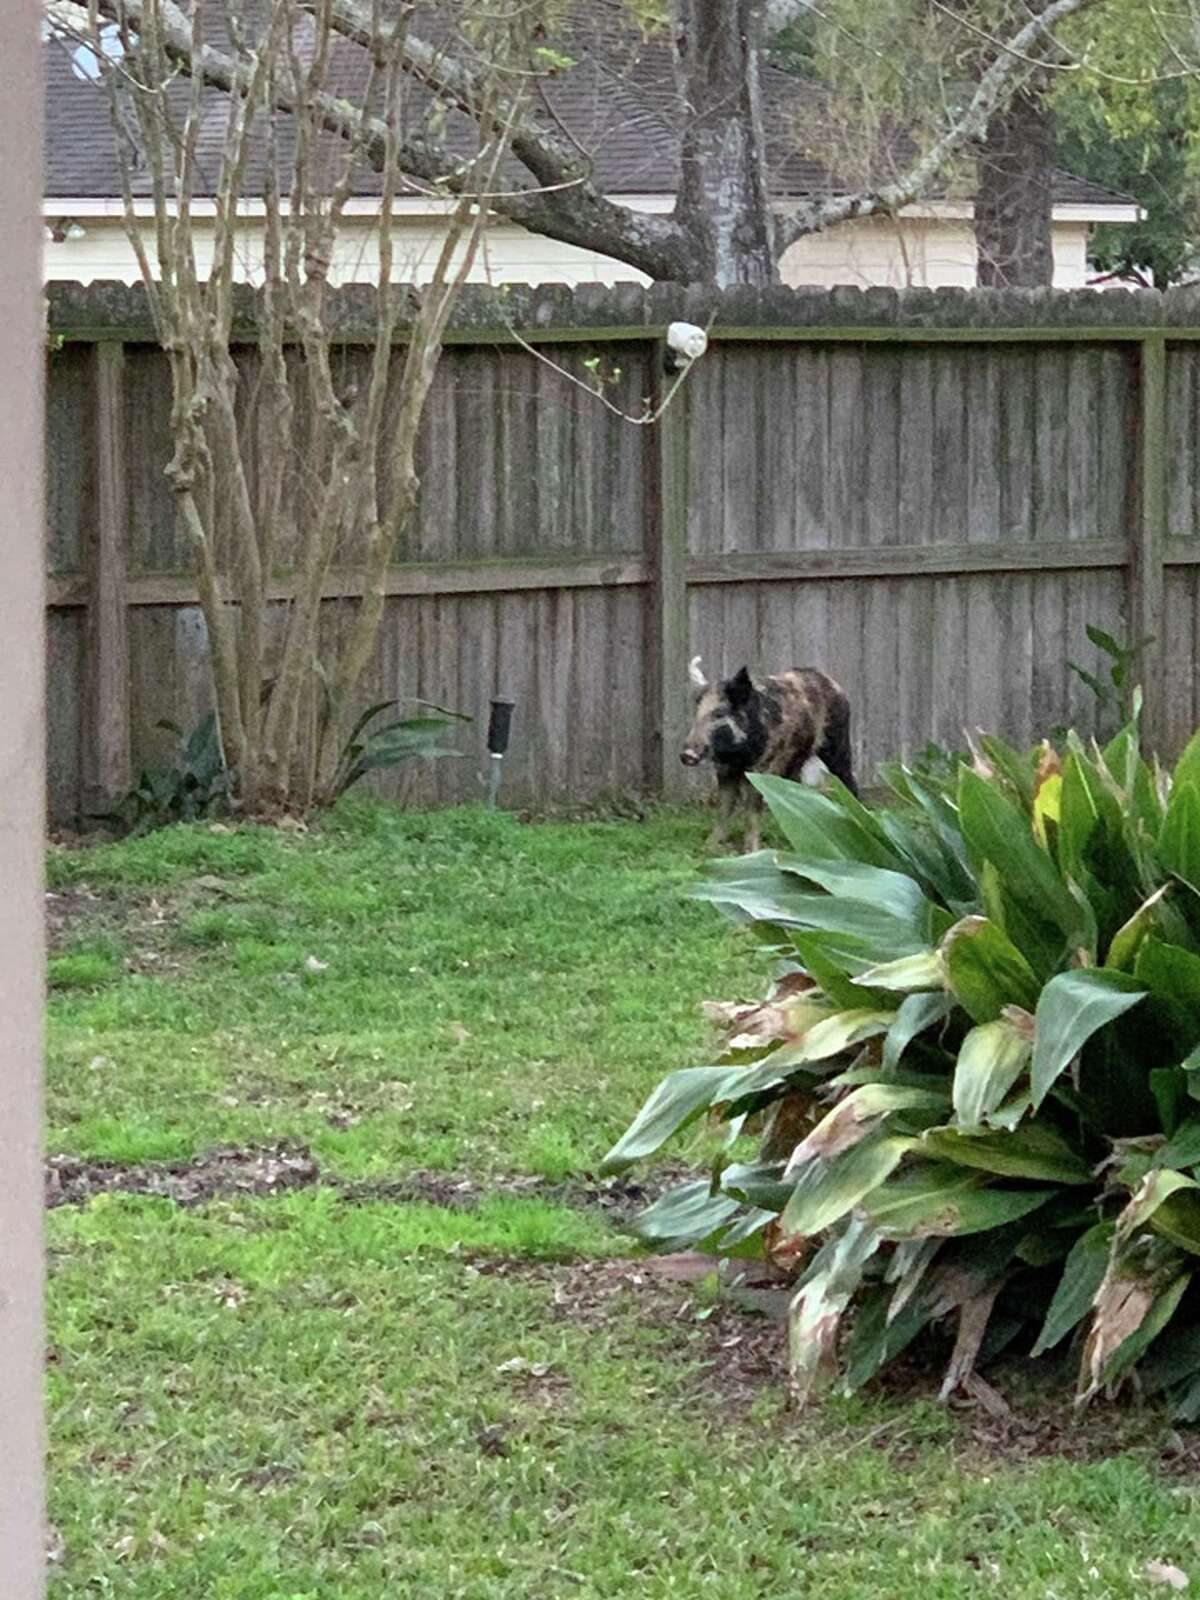 Powe's wife Taryn said her neighbors have expressed concern about their own safety when venturing outside their homes due to the increase in feral hog sightings.